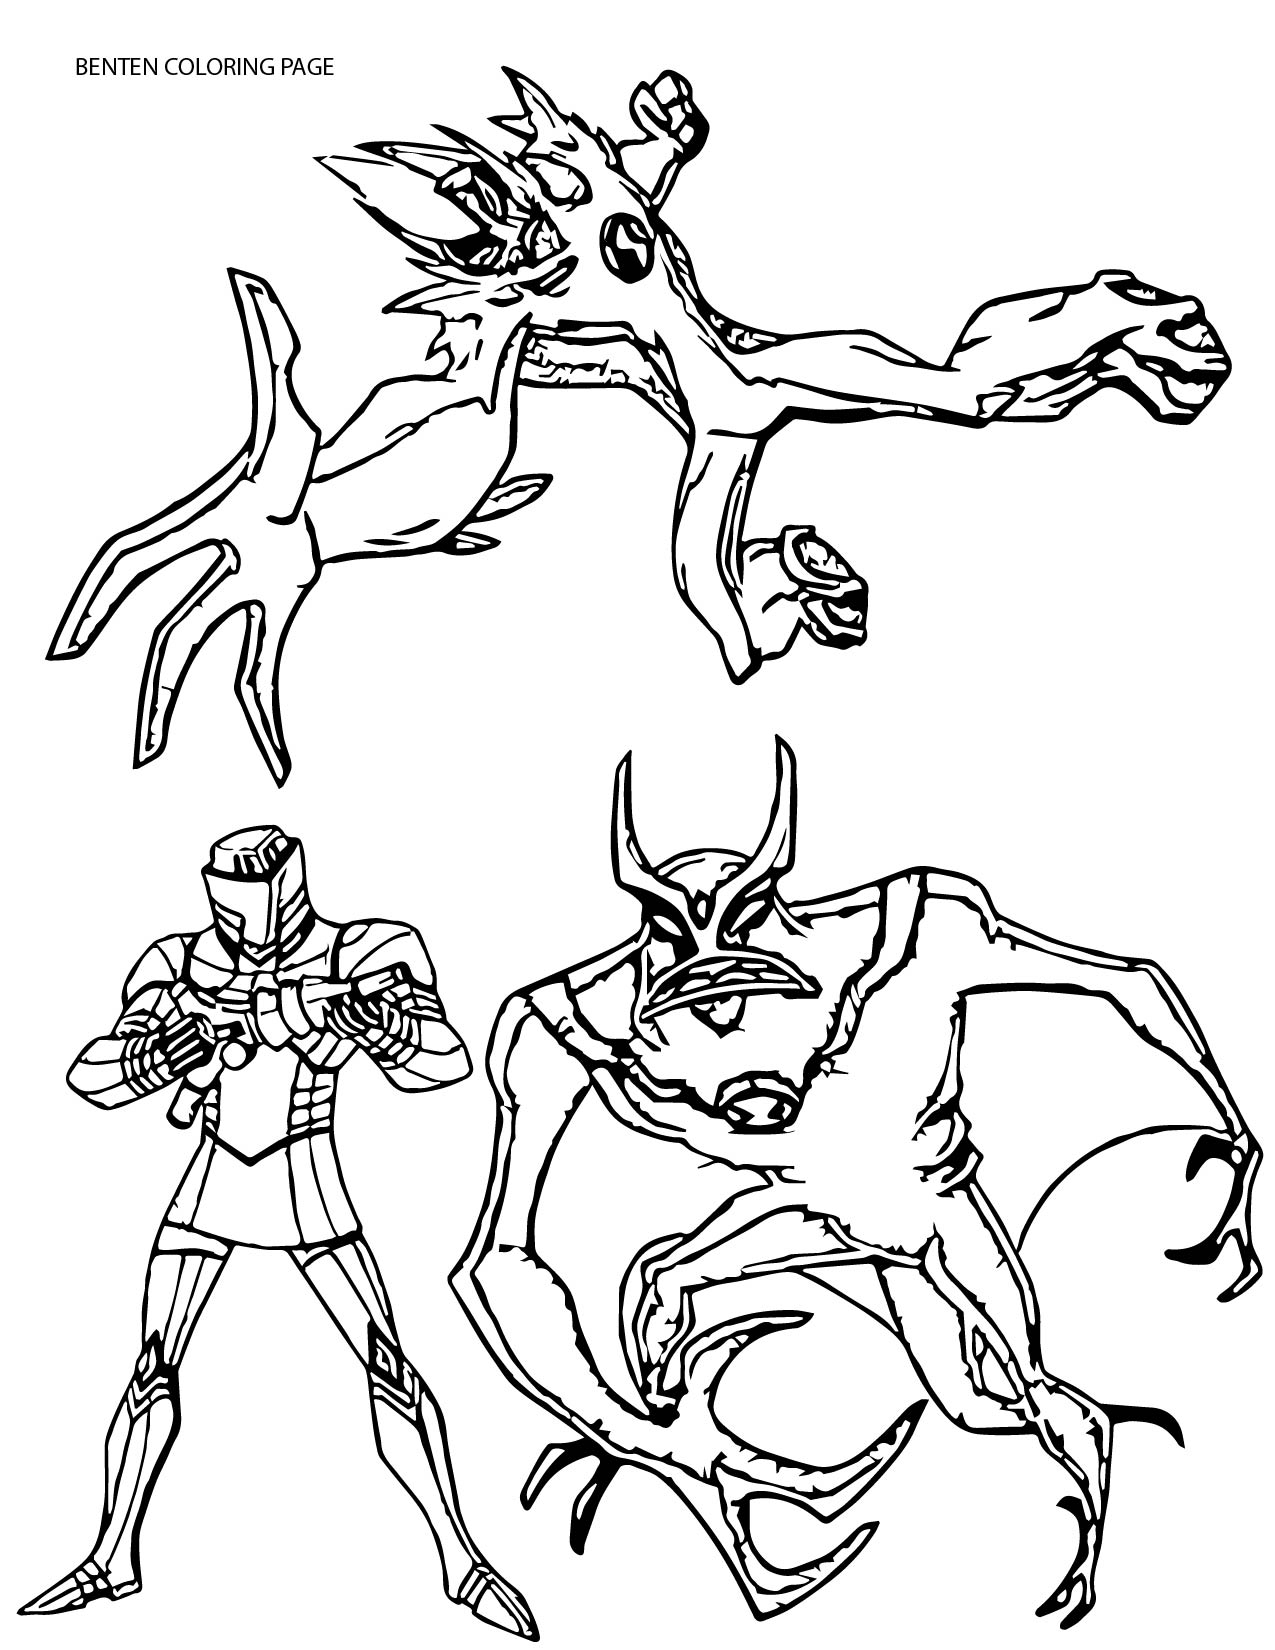 Three Character Ben10 Benten Coloring Page